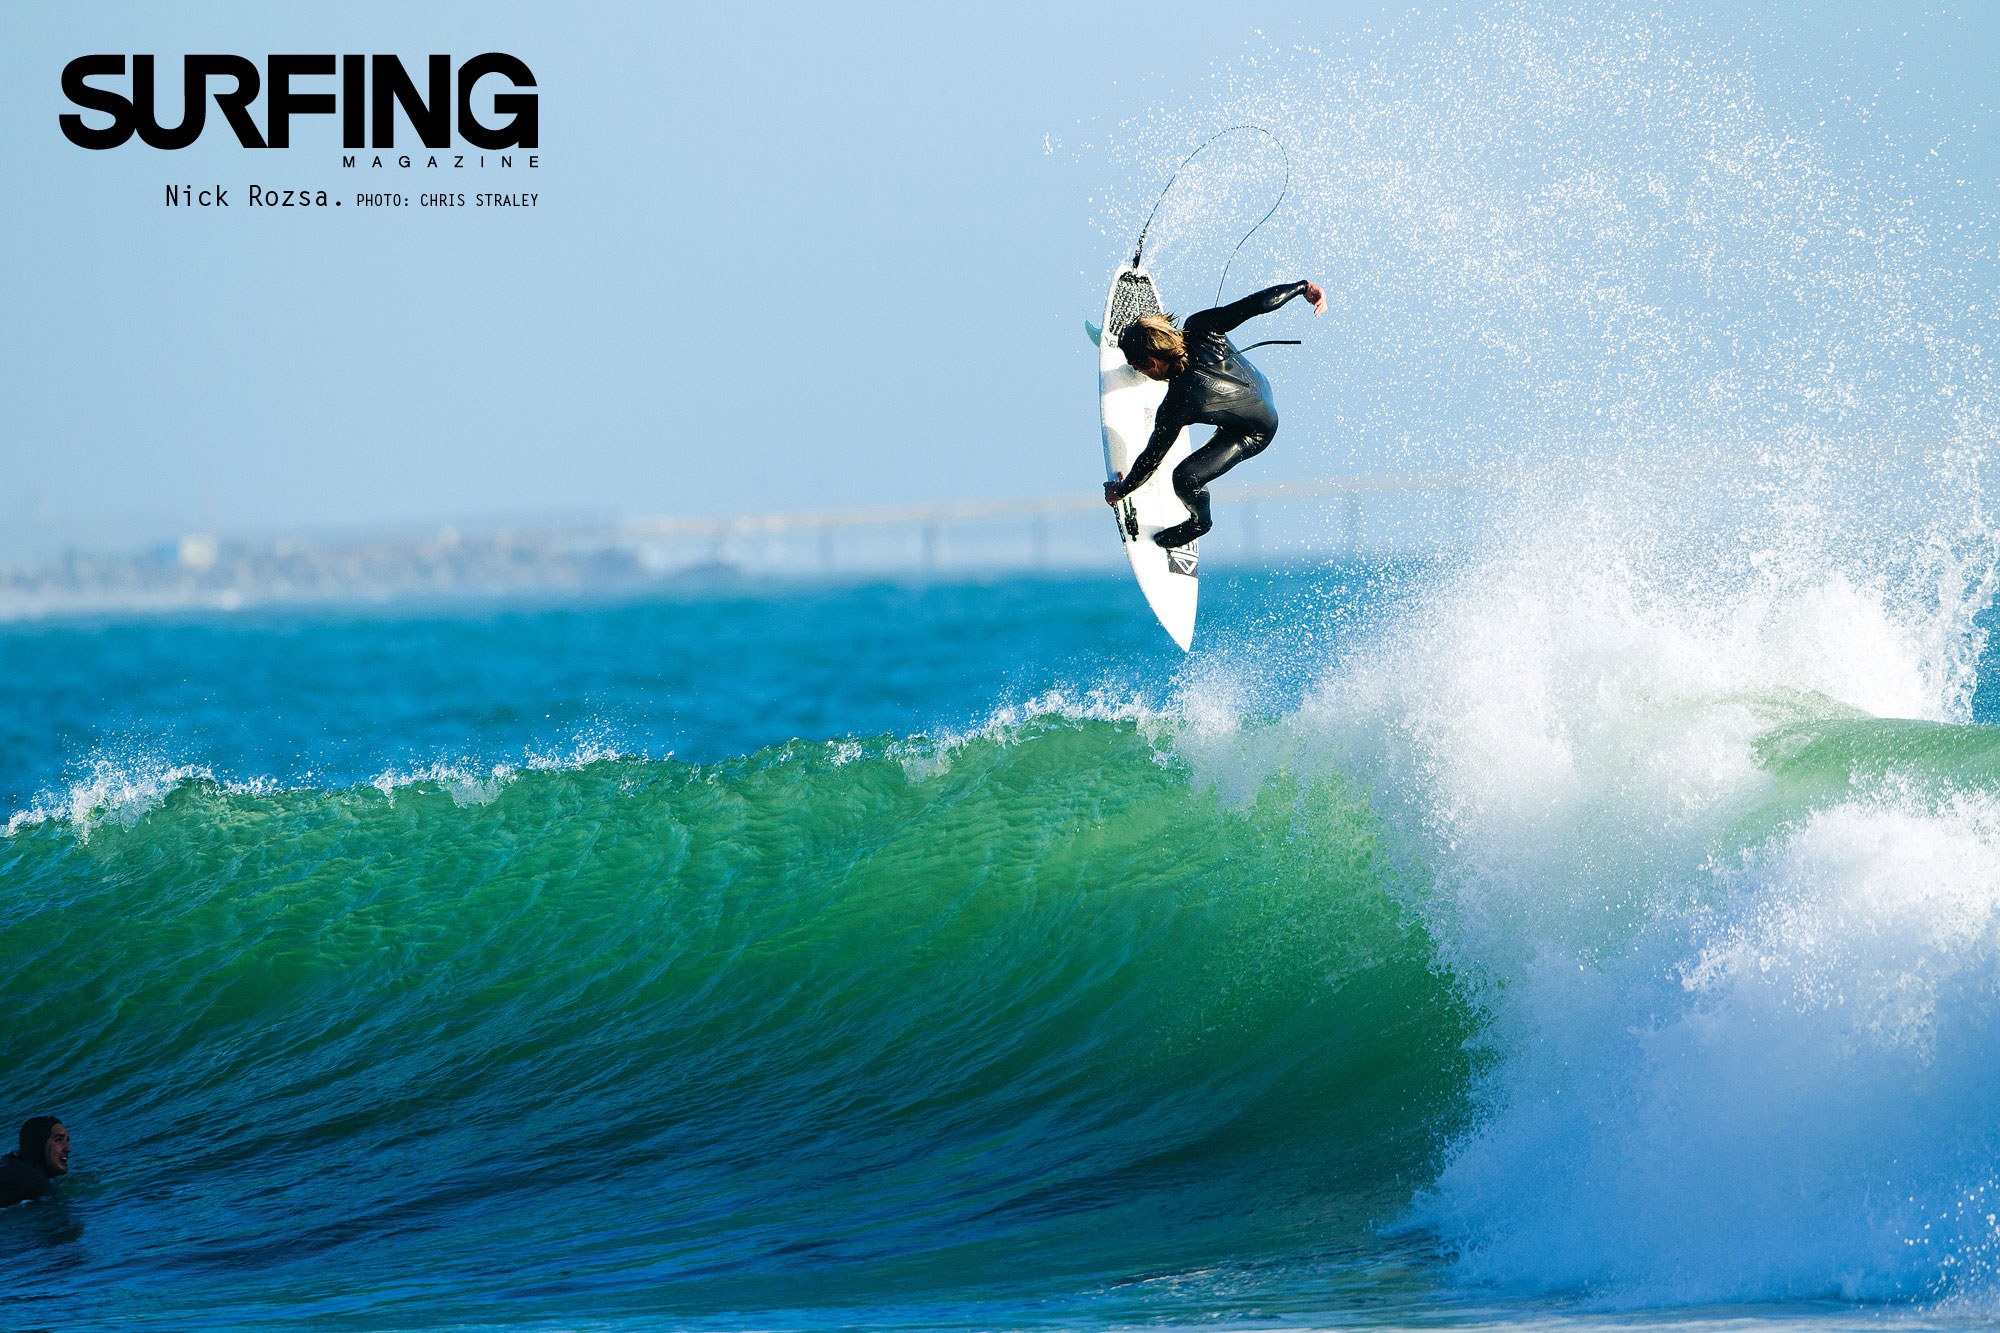 surfing desktop wallpaper nick rosza chris straley surfing magazine 2000x1333